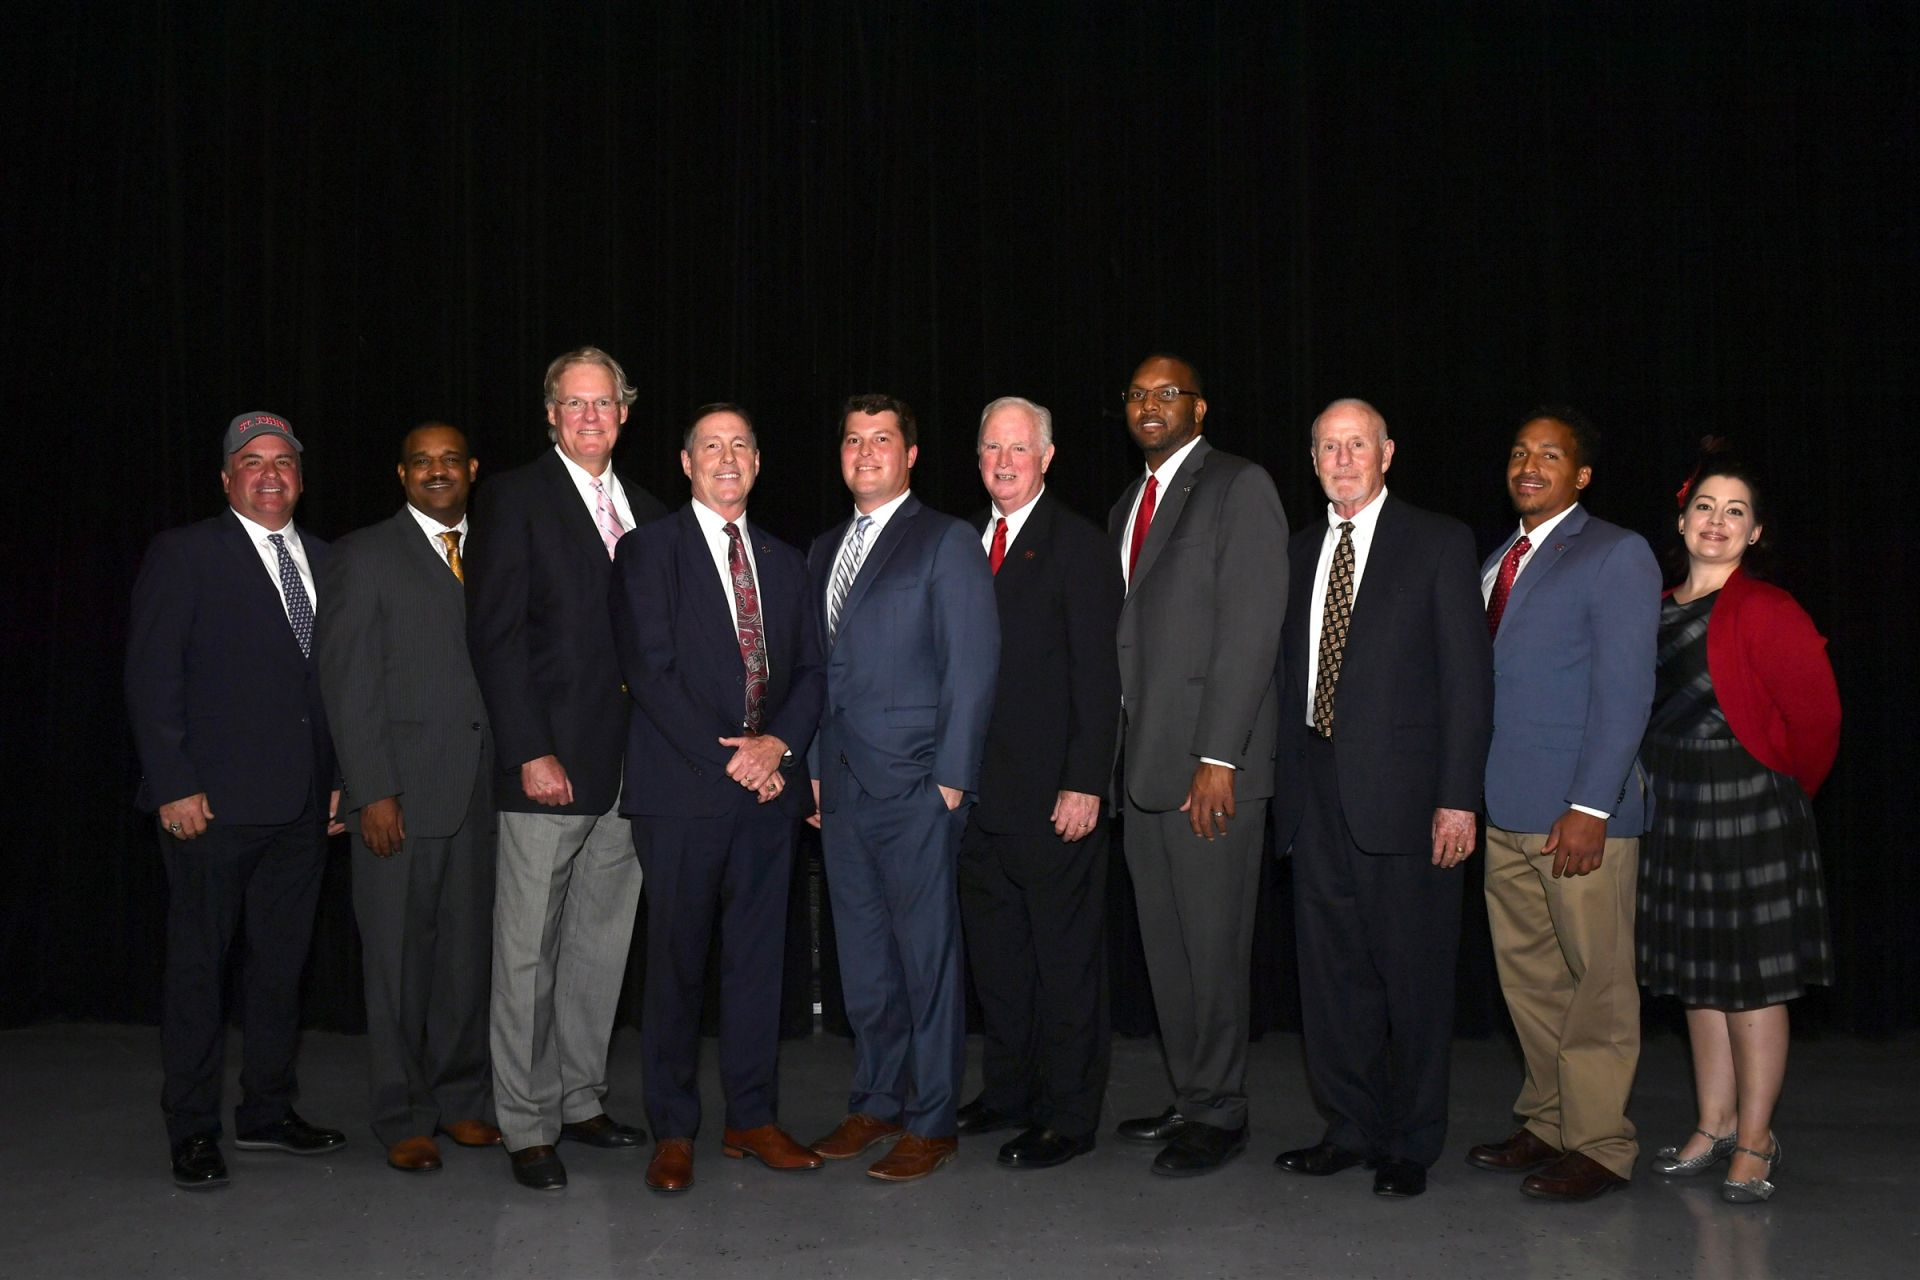 From left: Mike Lessel '77, Alvin Perkins '75, Mark Hartley '73, Stephen Zubrod '72, J.D. Ricca '02, Chris Dill '64, Darryl Gilliam '93, Ron Panneton '63, Anthony Coleman '08 (brother of Marissa Coleman '05) and Kate Bouterie '96 (accepting on behalf of Col. Richard Pfeiffer)